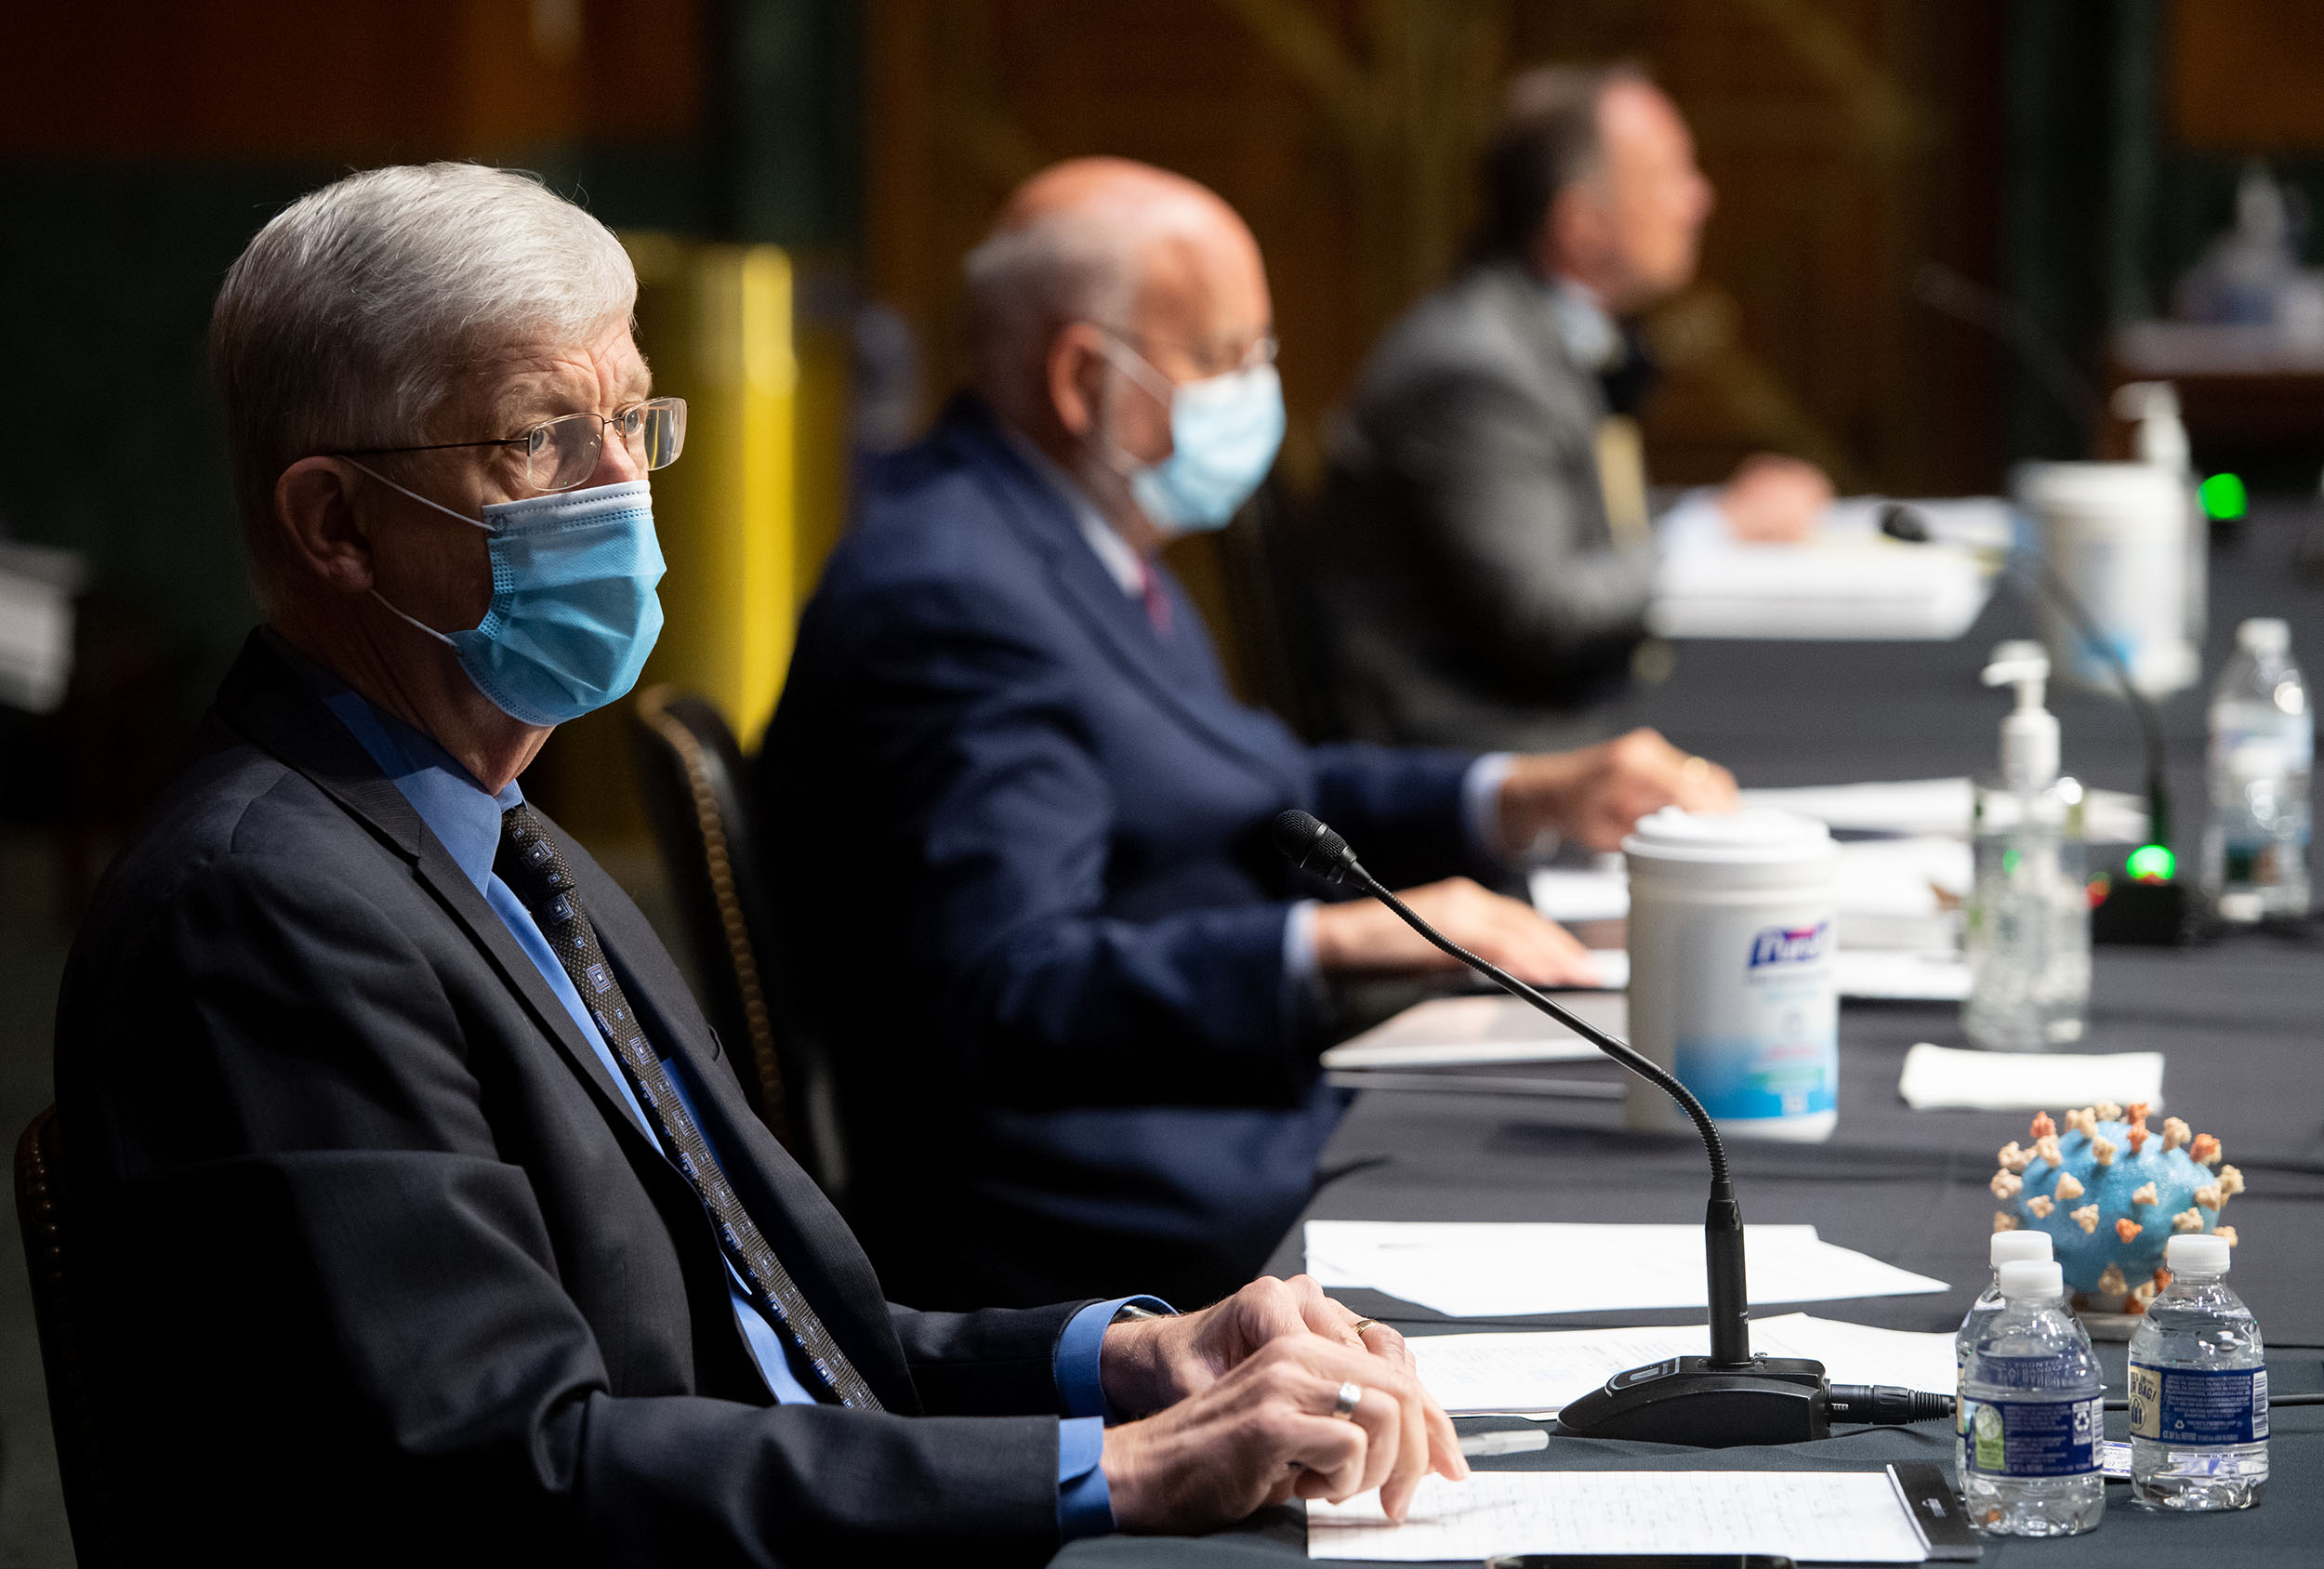 Francis Collins, director of the US National Institutes of Health, wears a protective mask during a Senate Appropriations Subcommittee hearing in Washington, DC, on July 2.